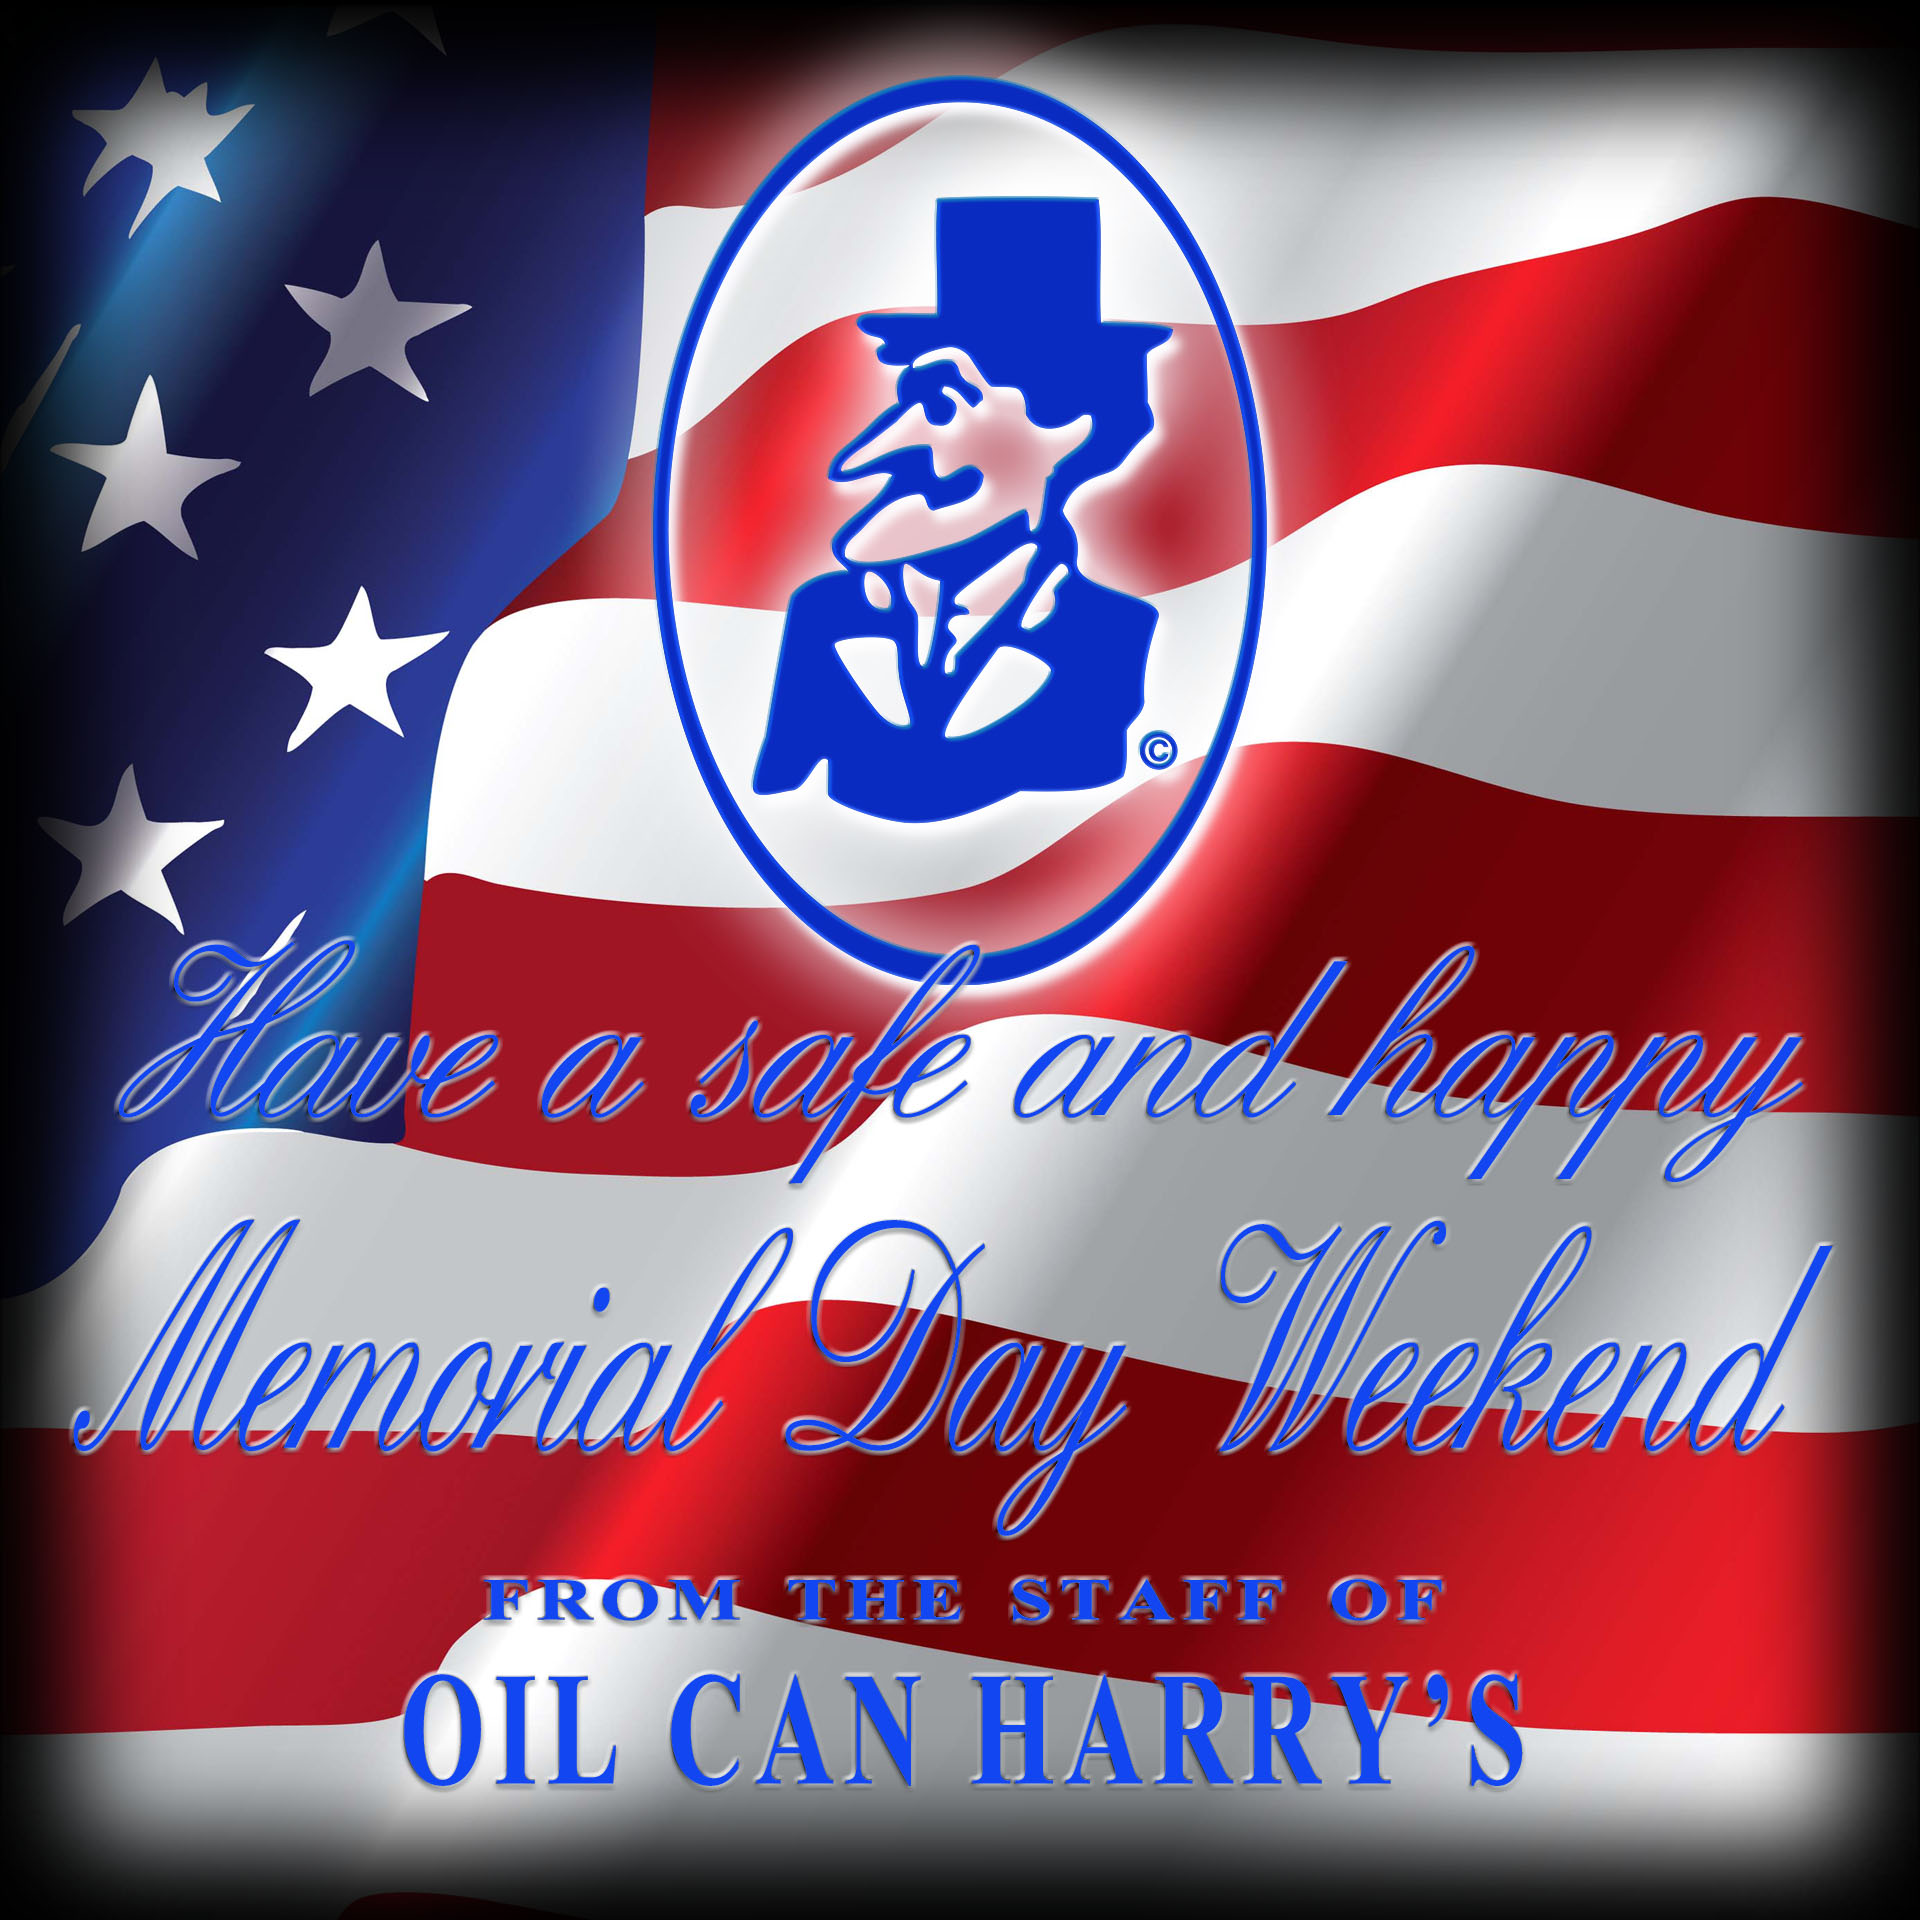 Have a Safe and Happy Memorial Day Weekend from The Staff of Oil Can Harry's!